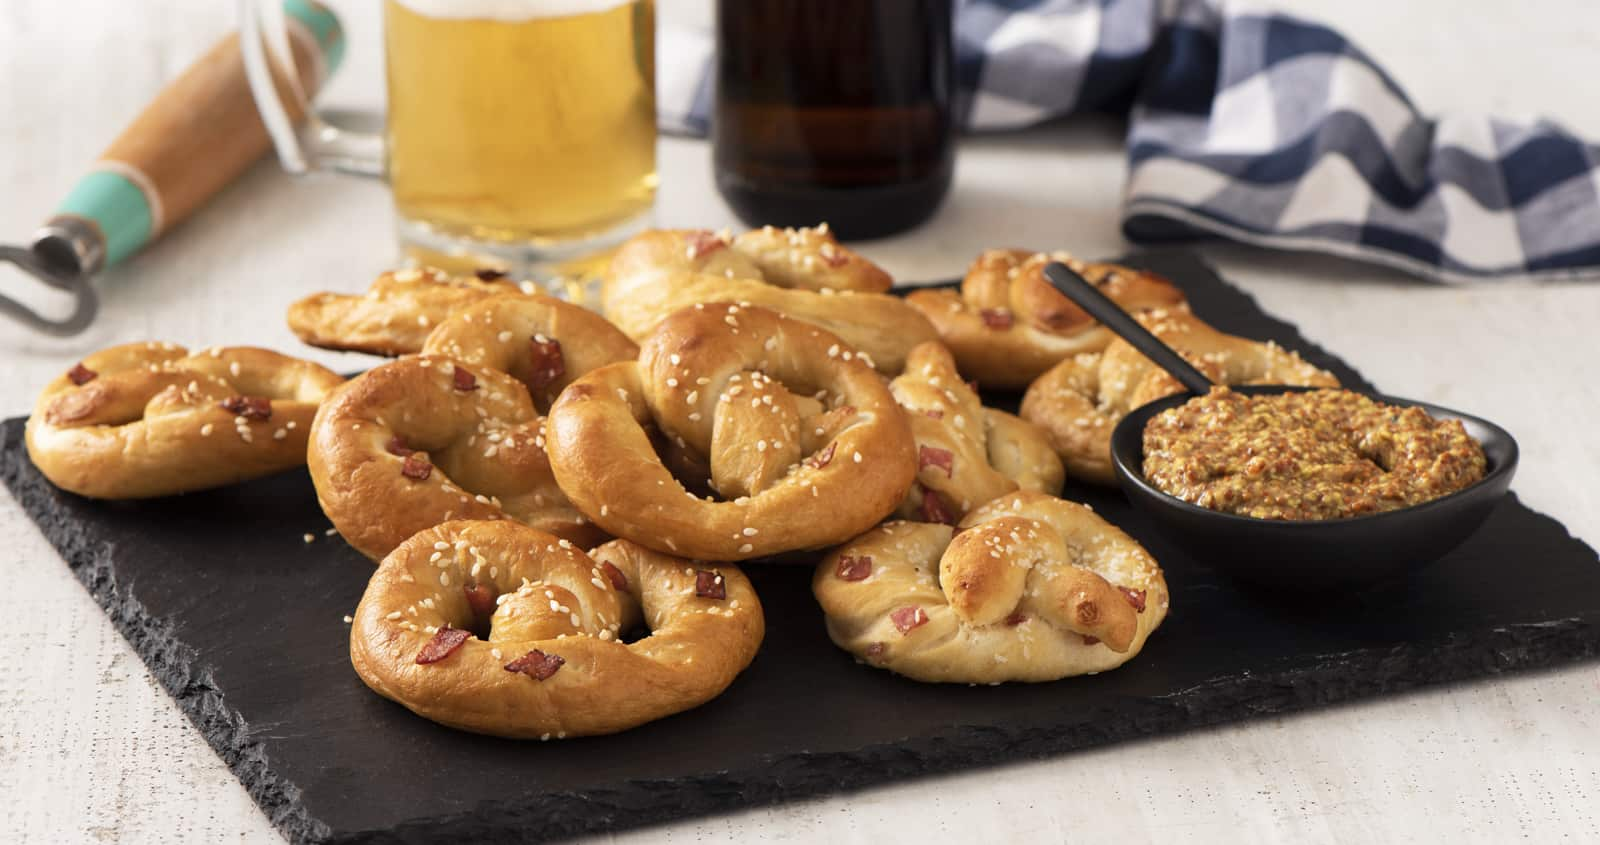 Easy German Soft Pretzels with Salami